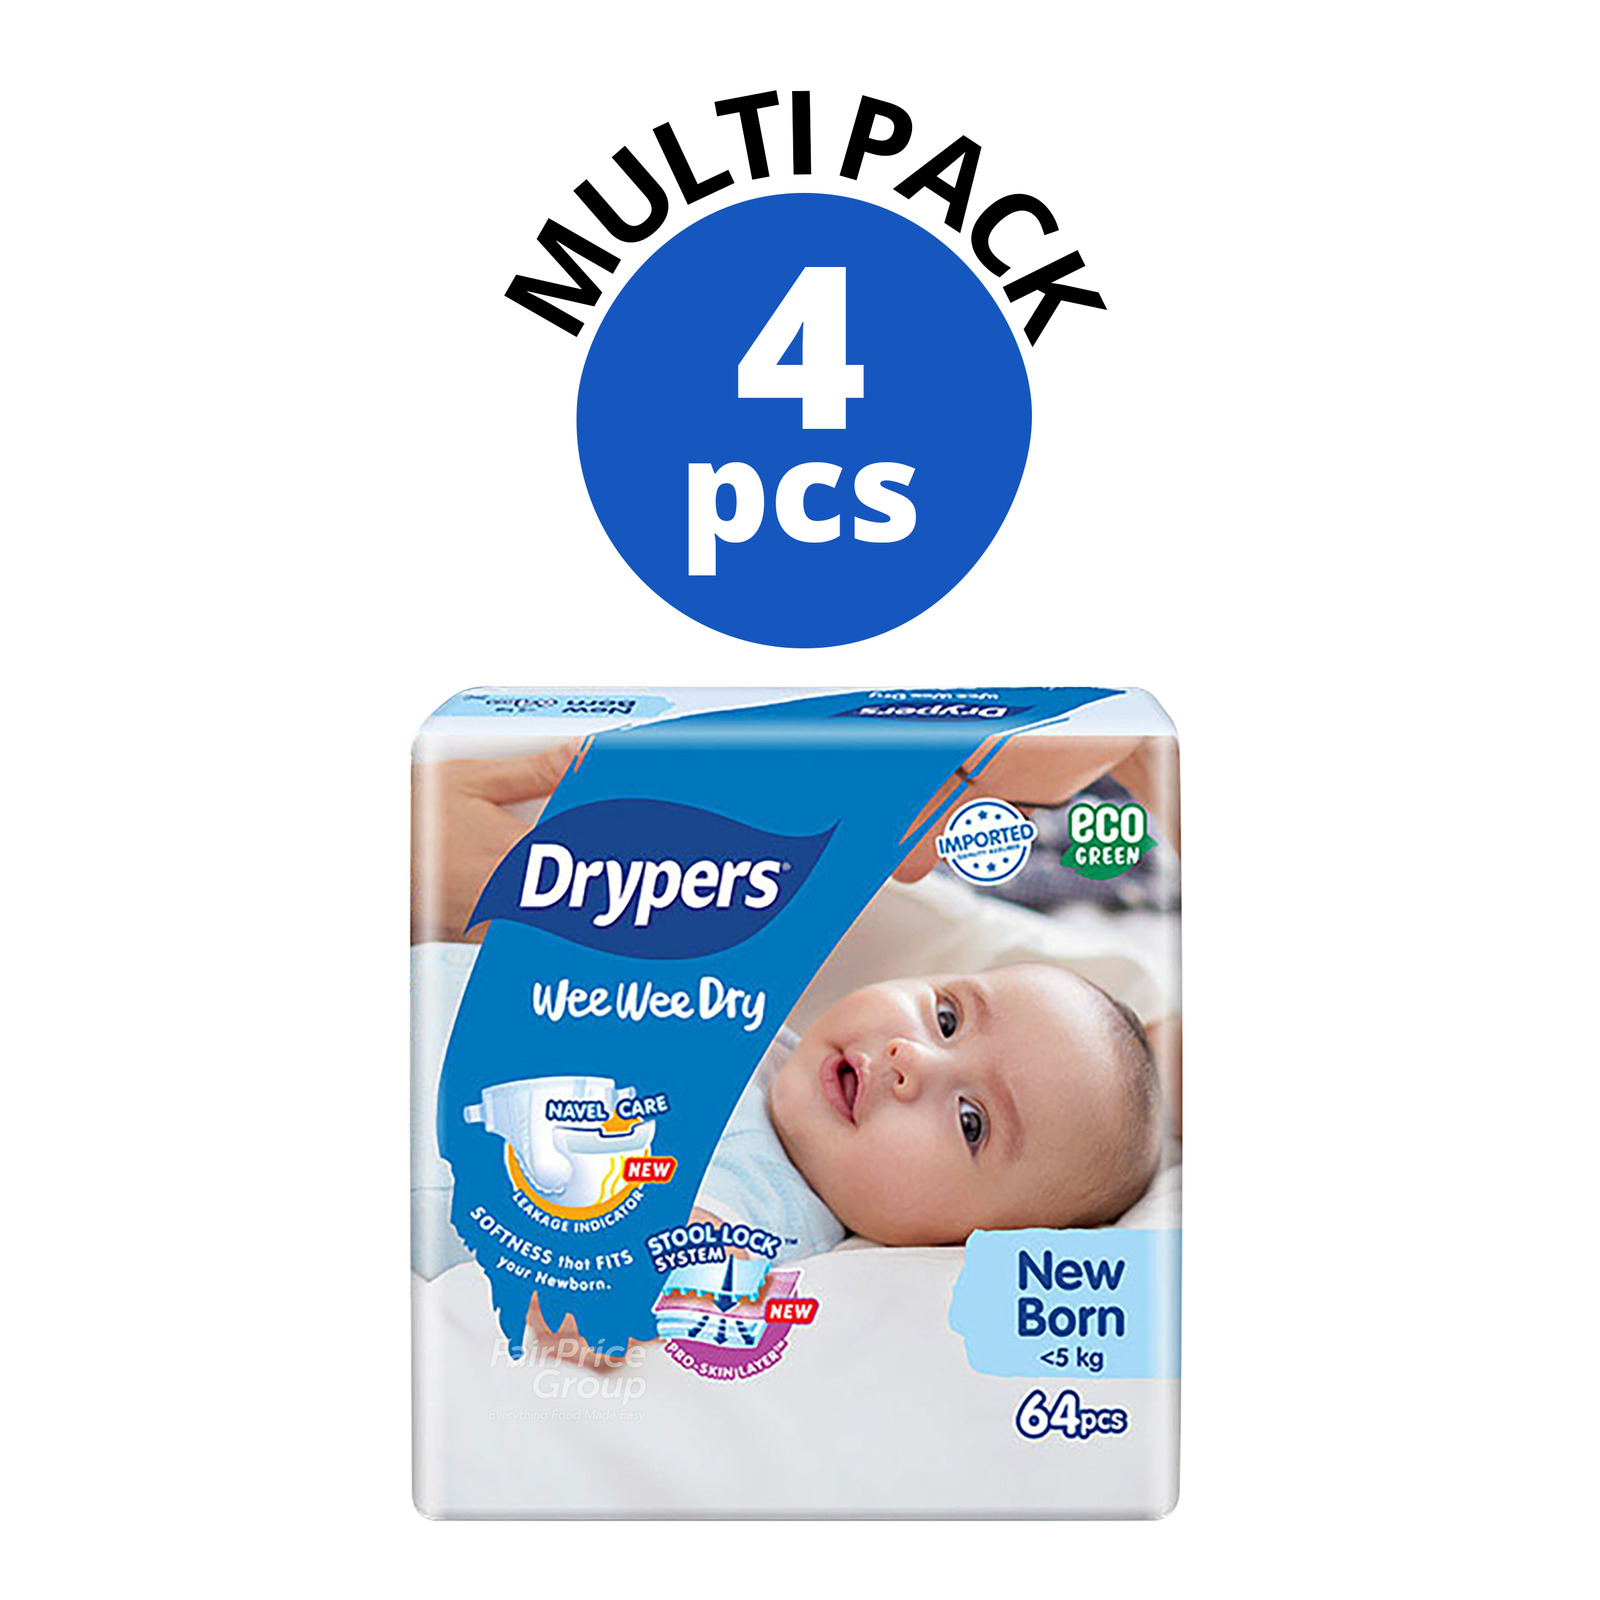 DRYPERS wee wee dry new born 24 pieces x 8 packs per carton